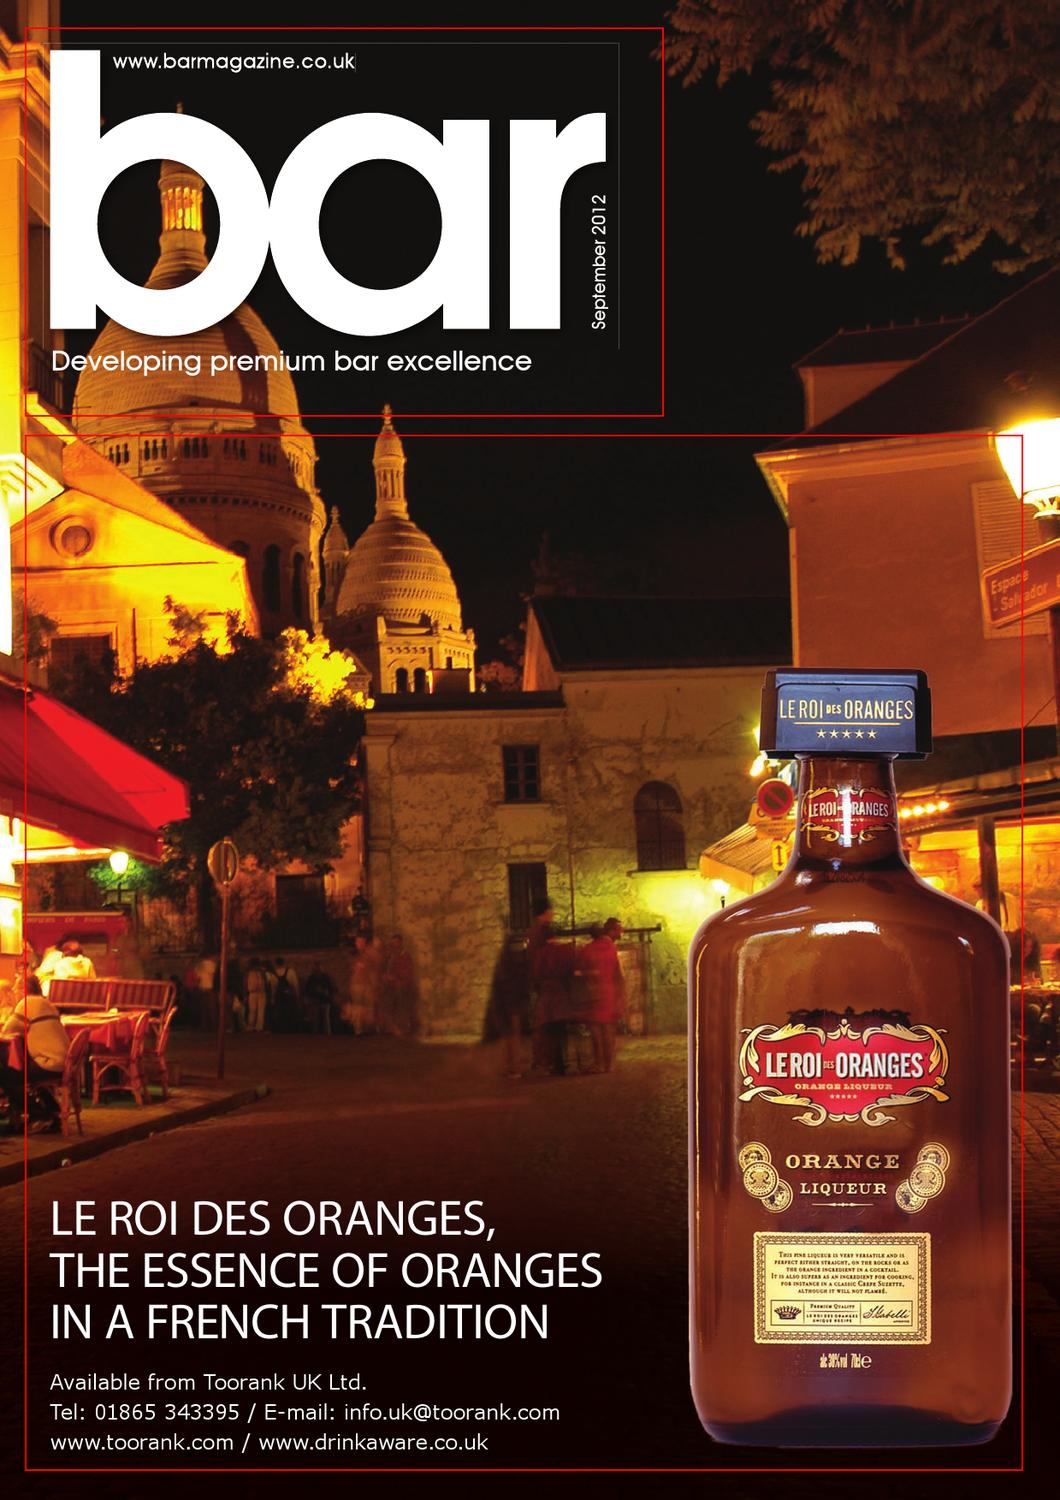 Bar Magazine | September 2012 by CIM Online LTD - issuu